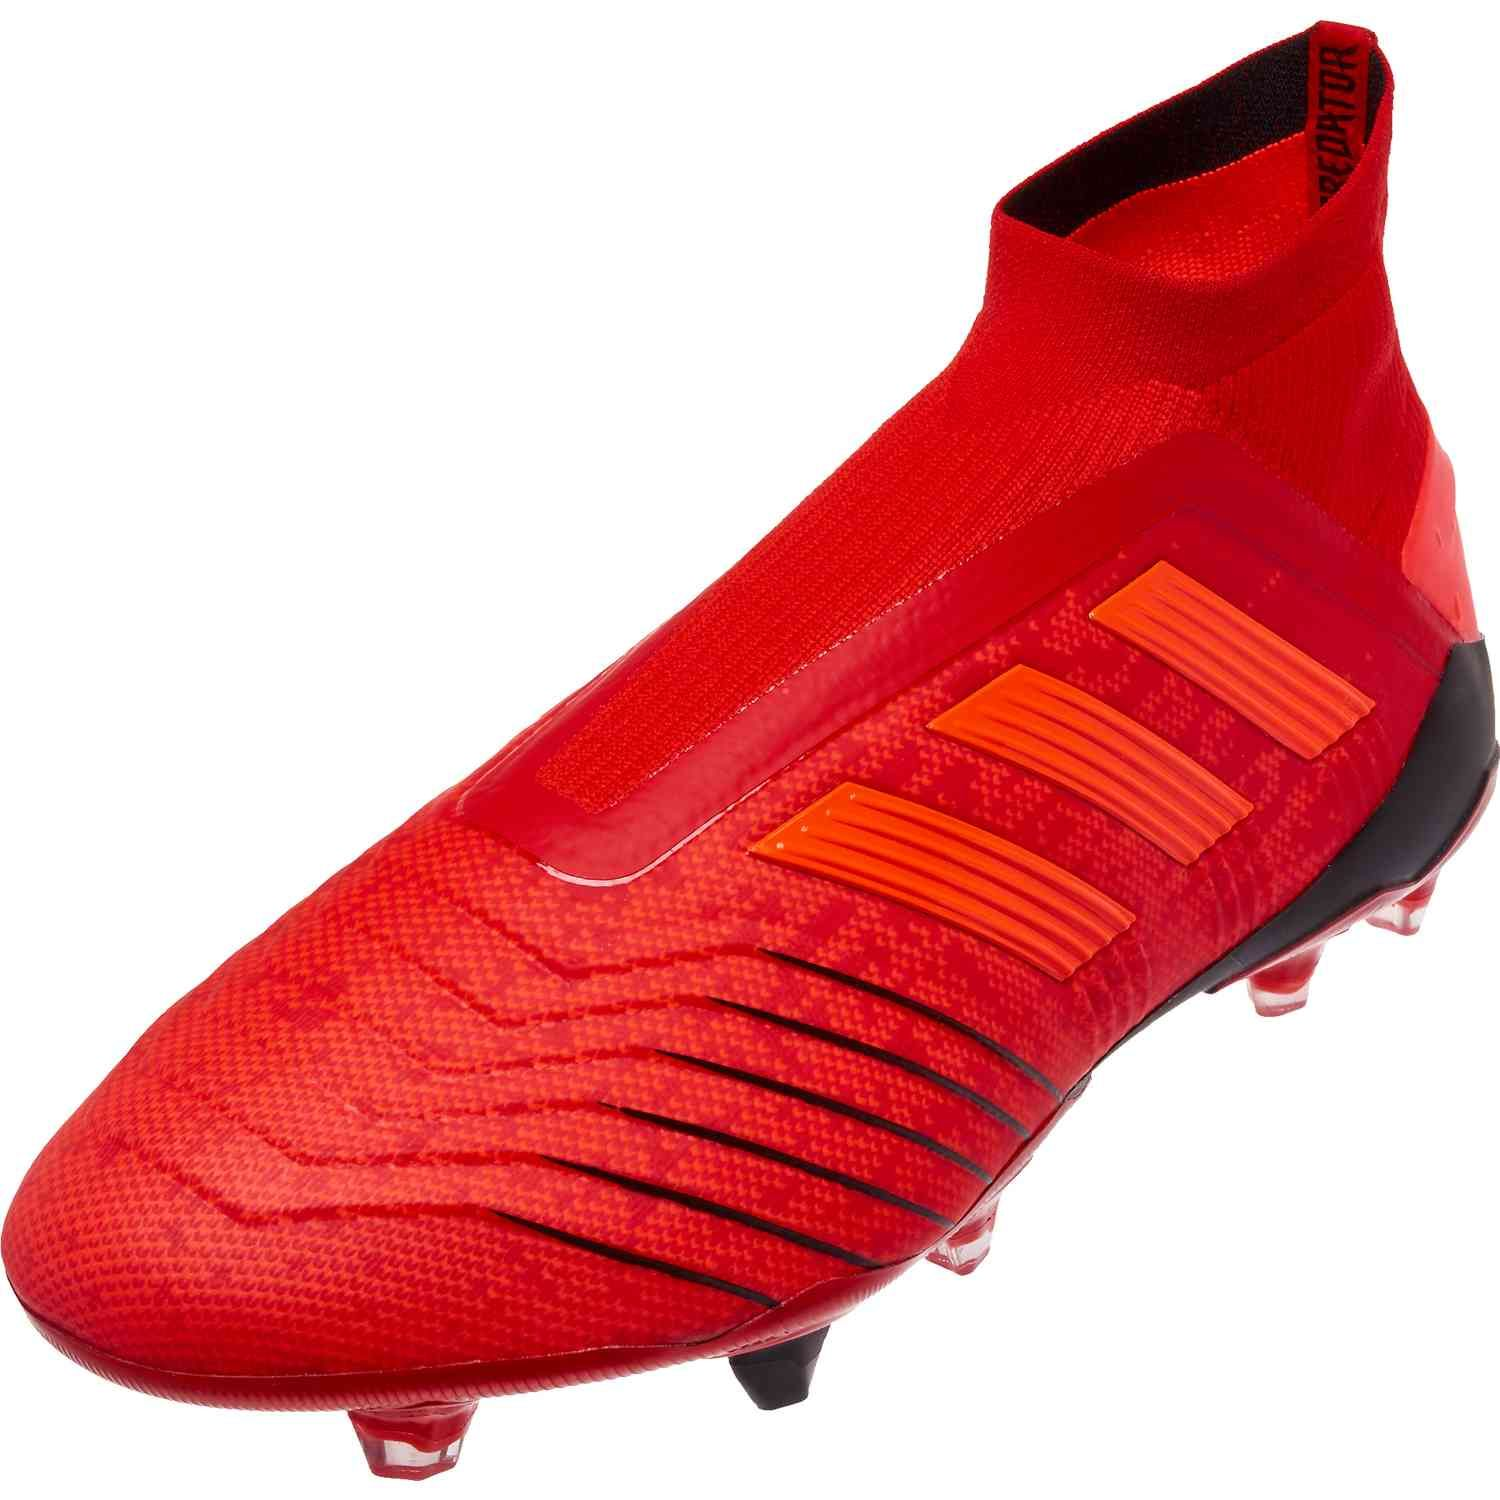 3094caaf0 The latest adidas Predator is at soccerpro.com right now. Get yours today!